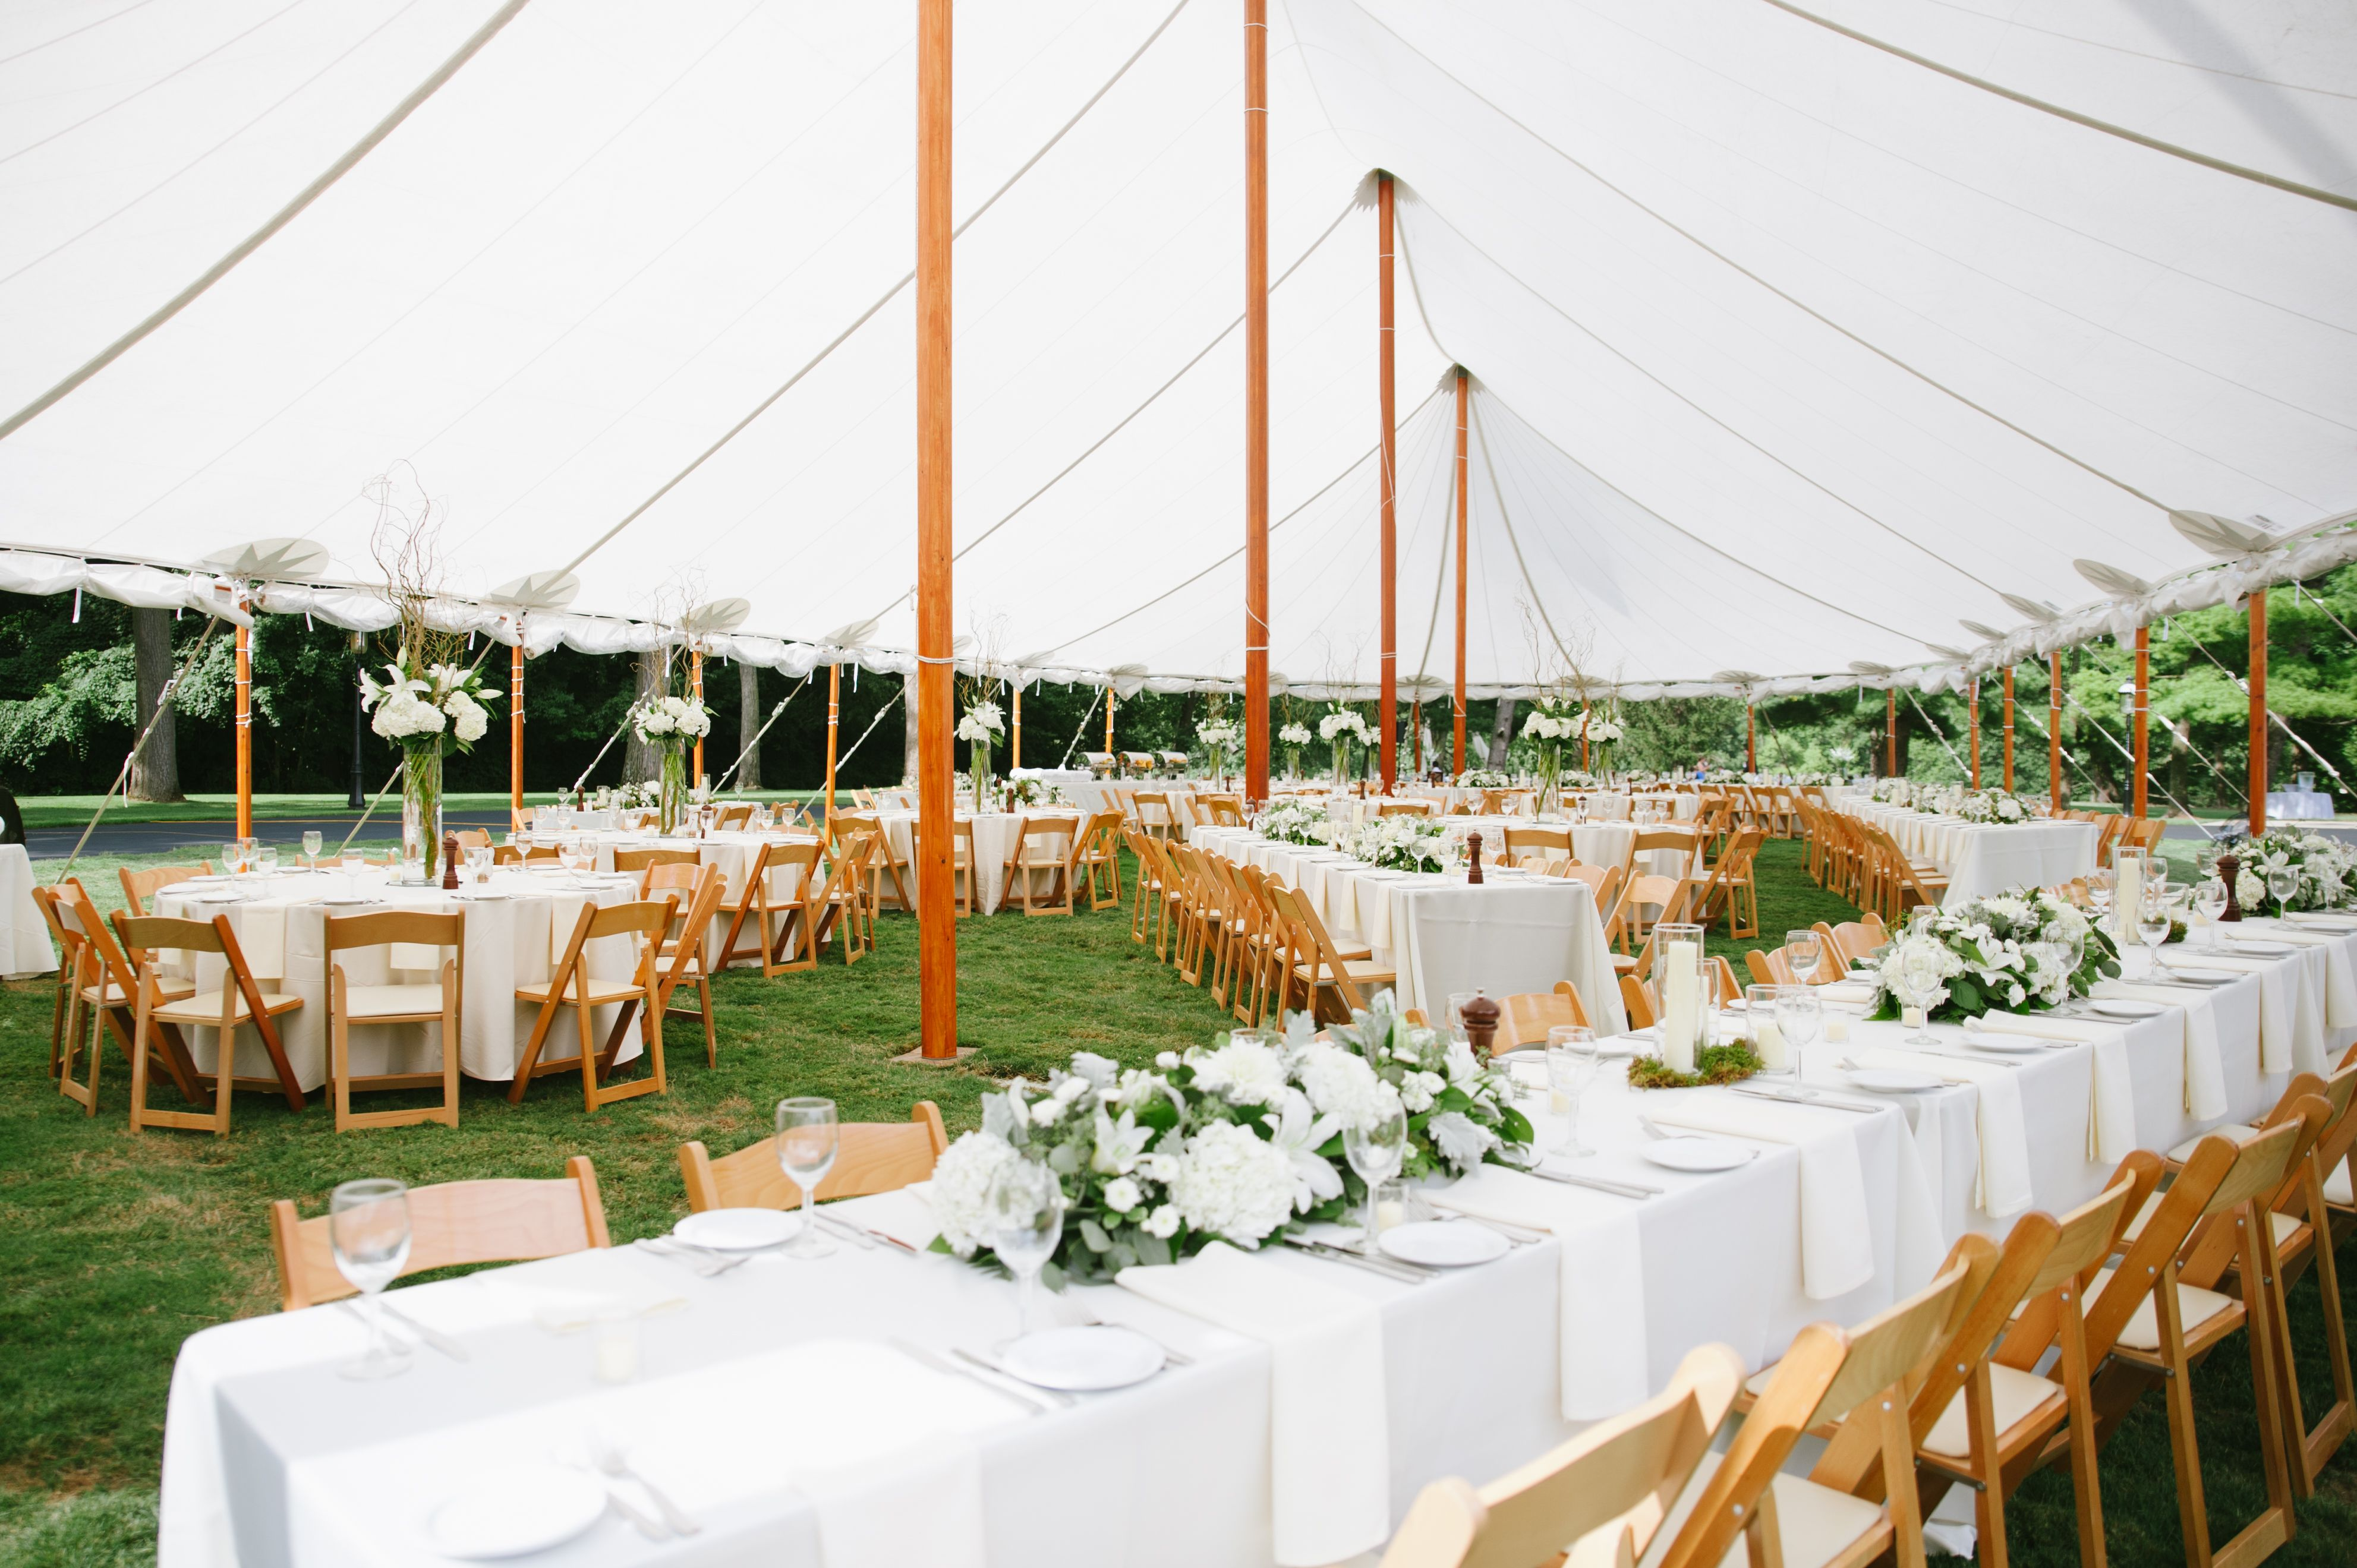 Columbus Country Club Is The Perfect Venue To Host A Tent Wedding Venue Columbus Country Club Photography Pho Tent Wedding Event Rental Country Club Wedding